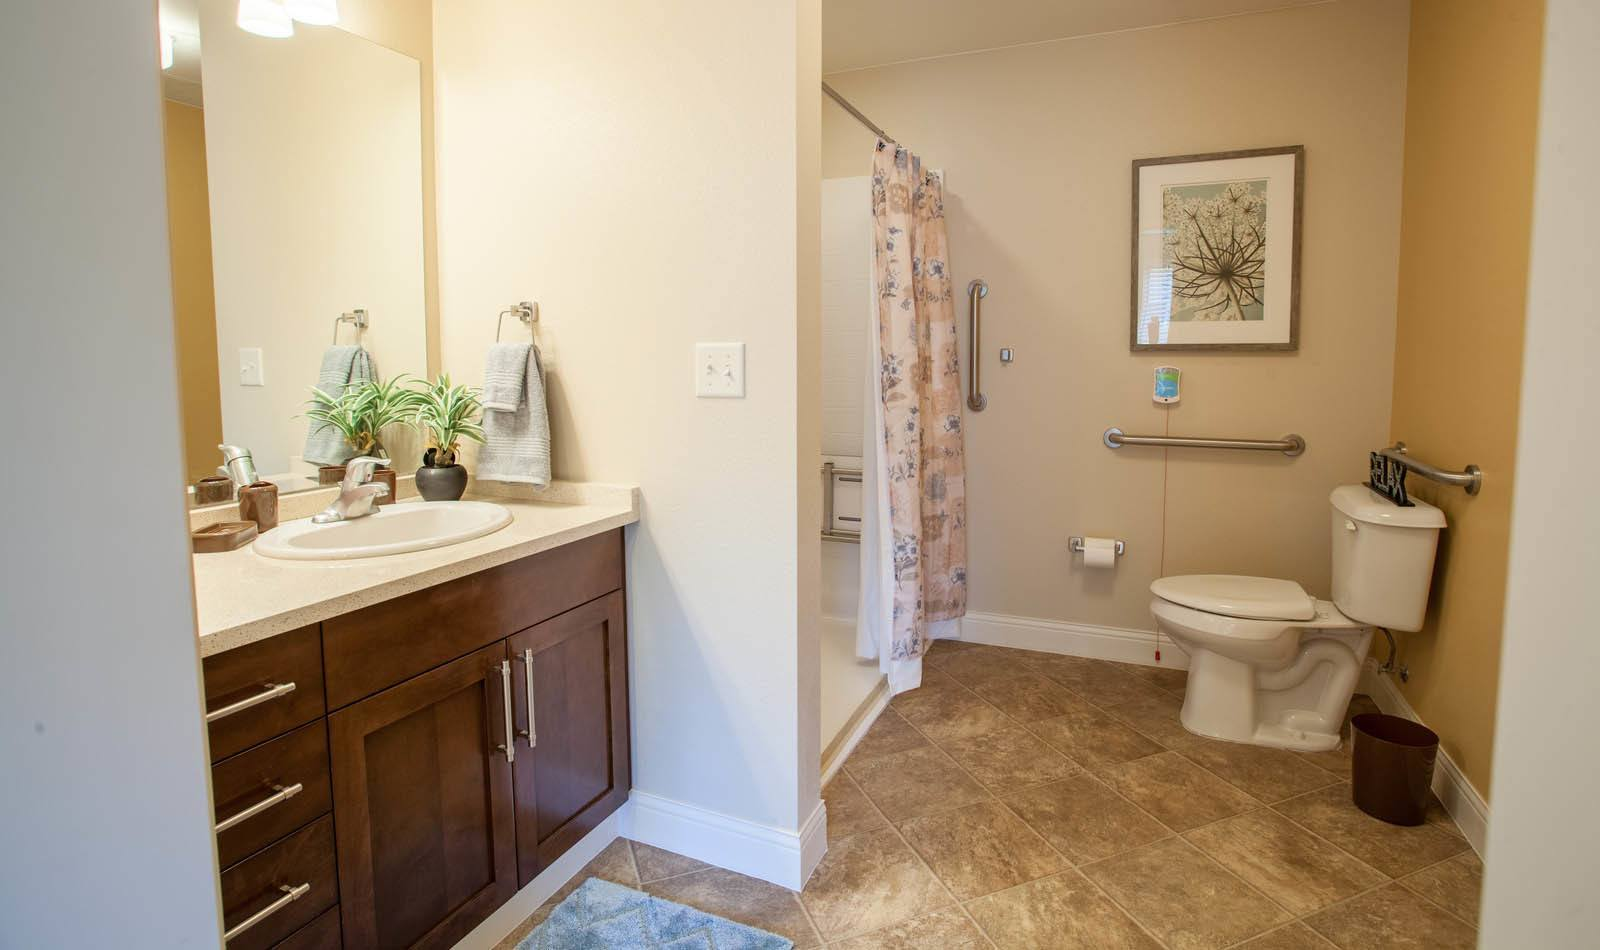 Lakewood Memory Care has spacious bathrooms in Lakewood